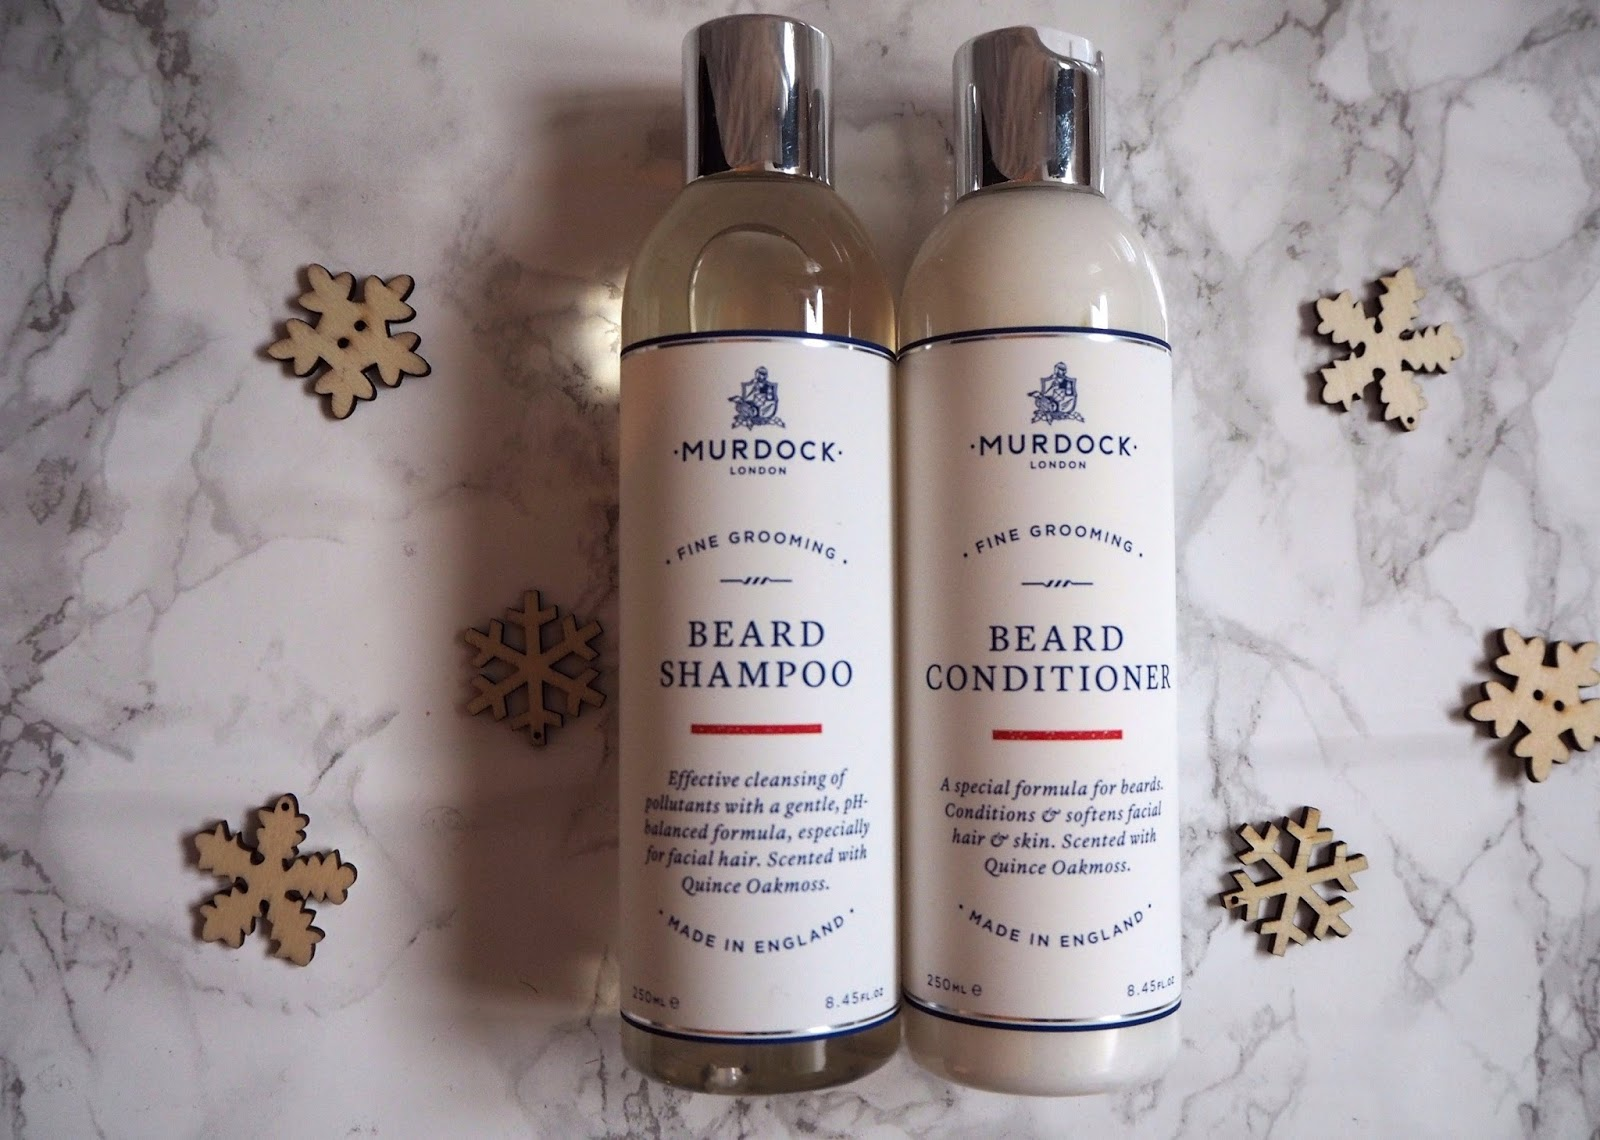 Murdock Shampoo and Conditioner